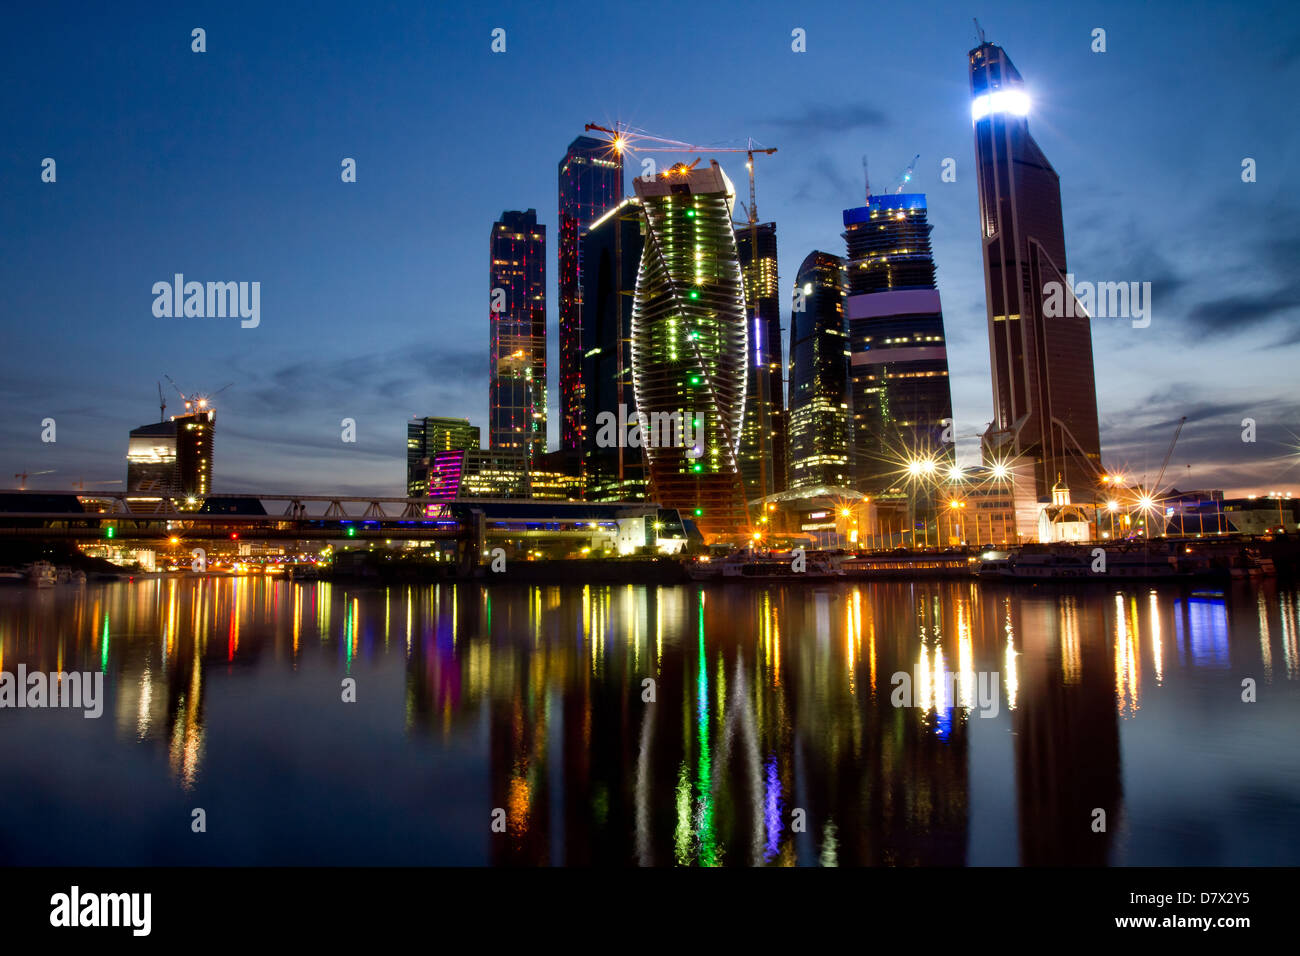 night view of skyscrapers of Moscow business centre - Stock Image